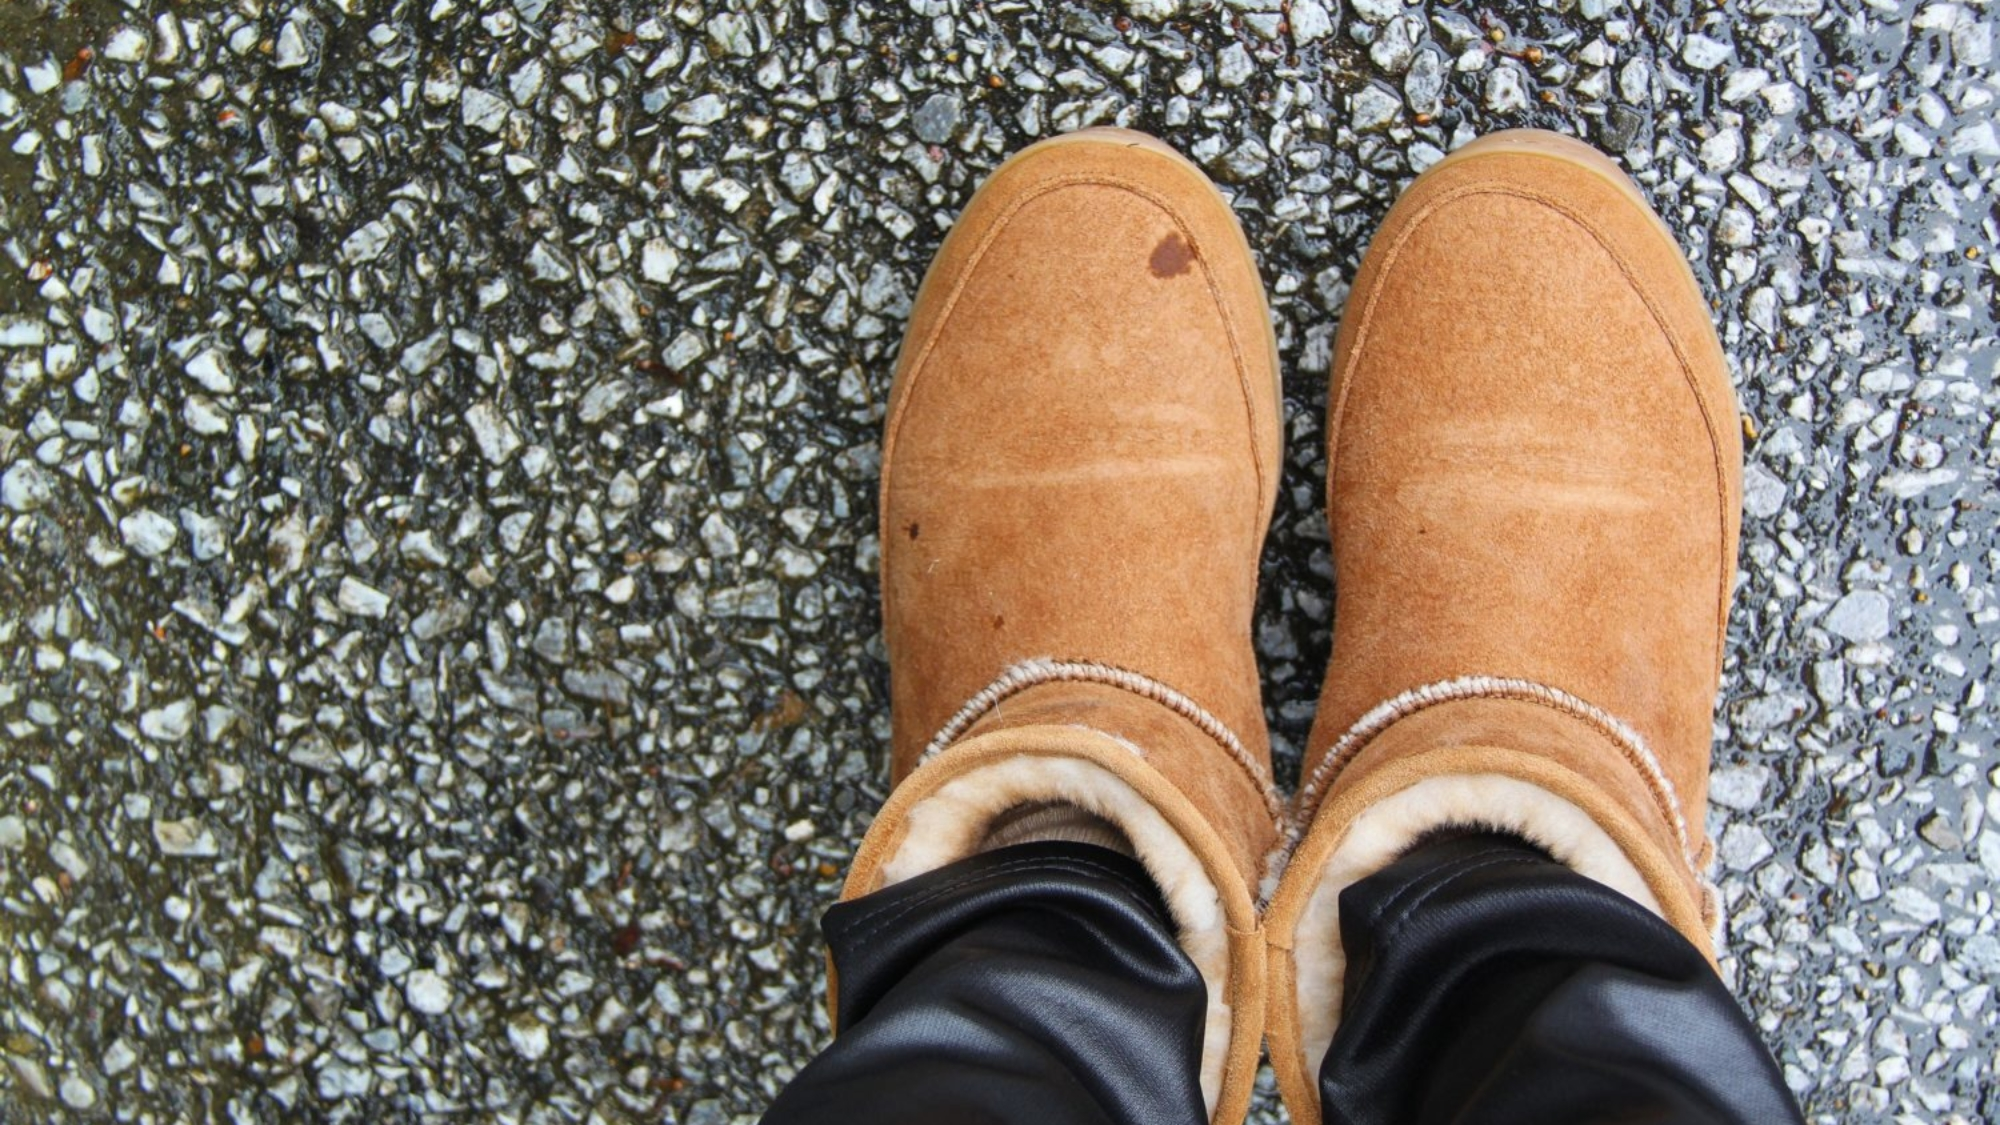 boots-close-up-cold-208260